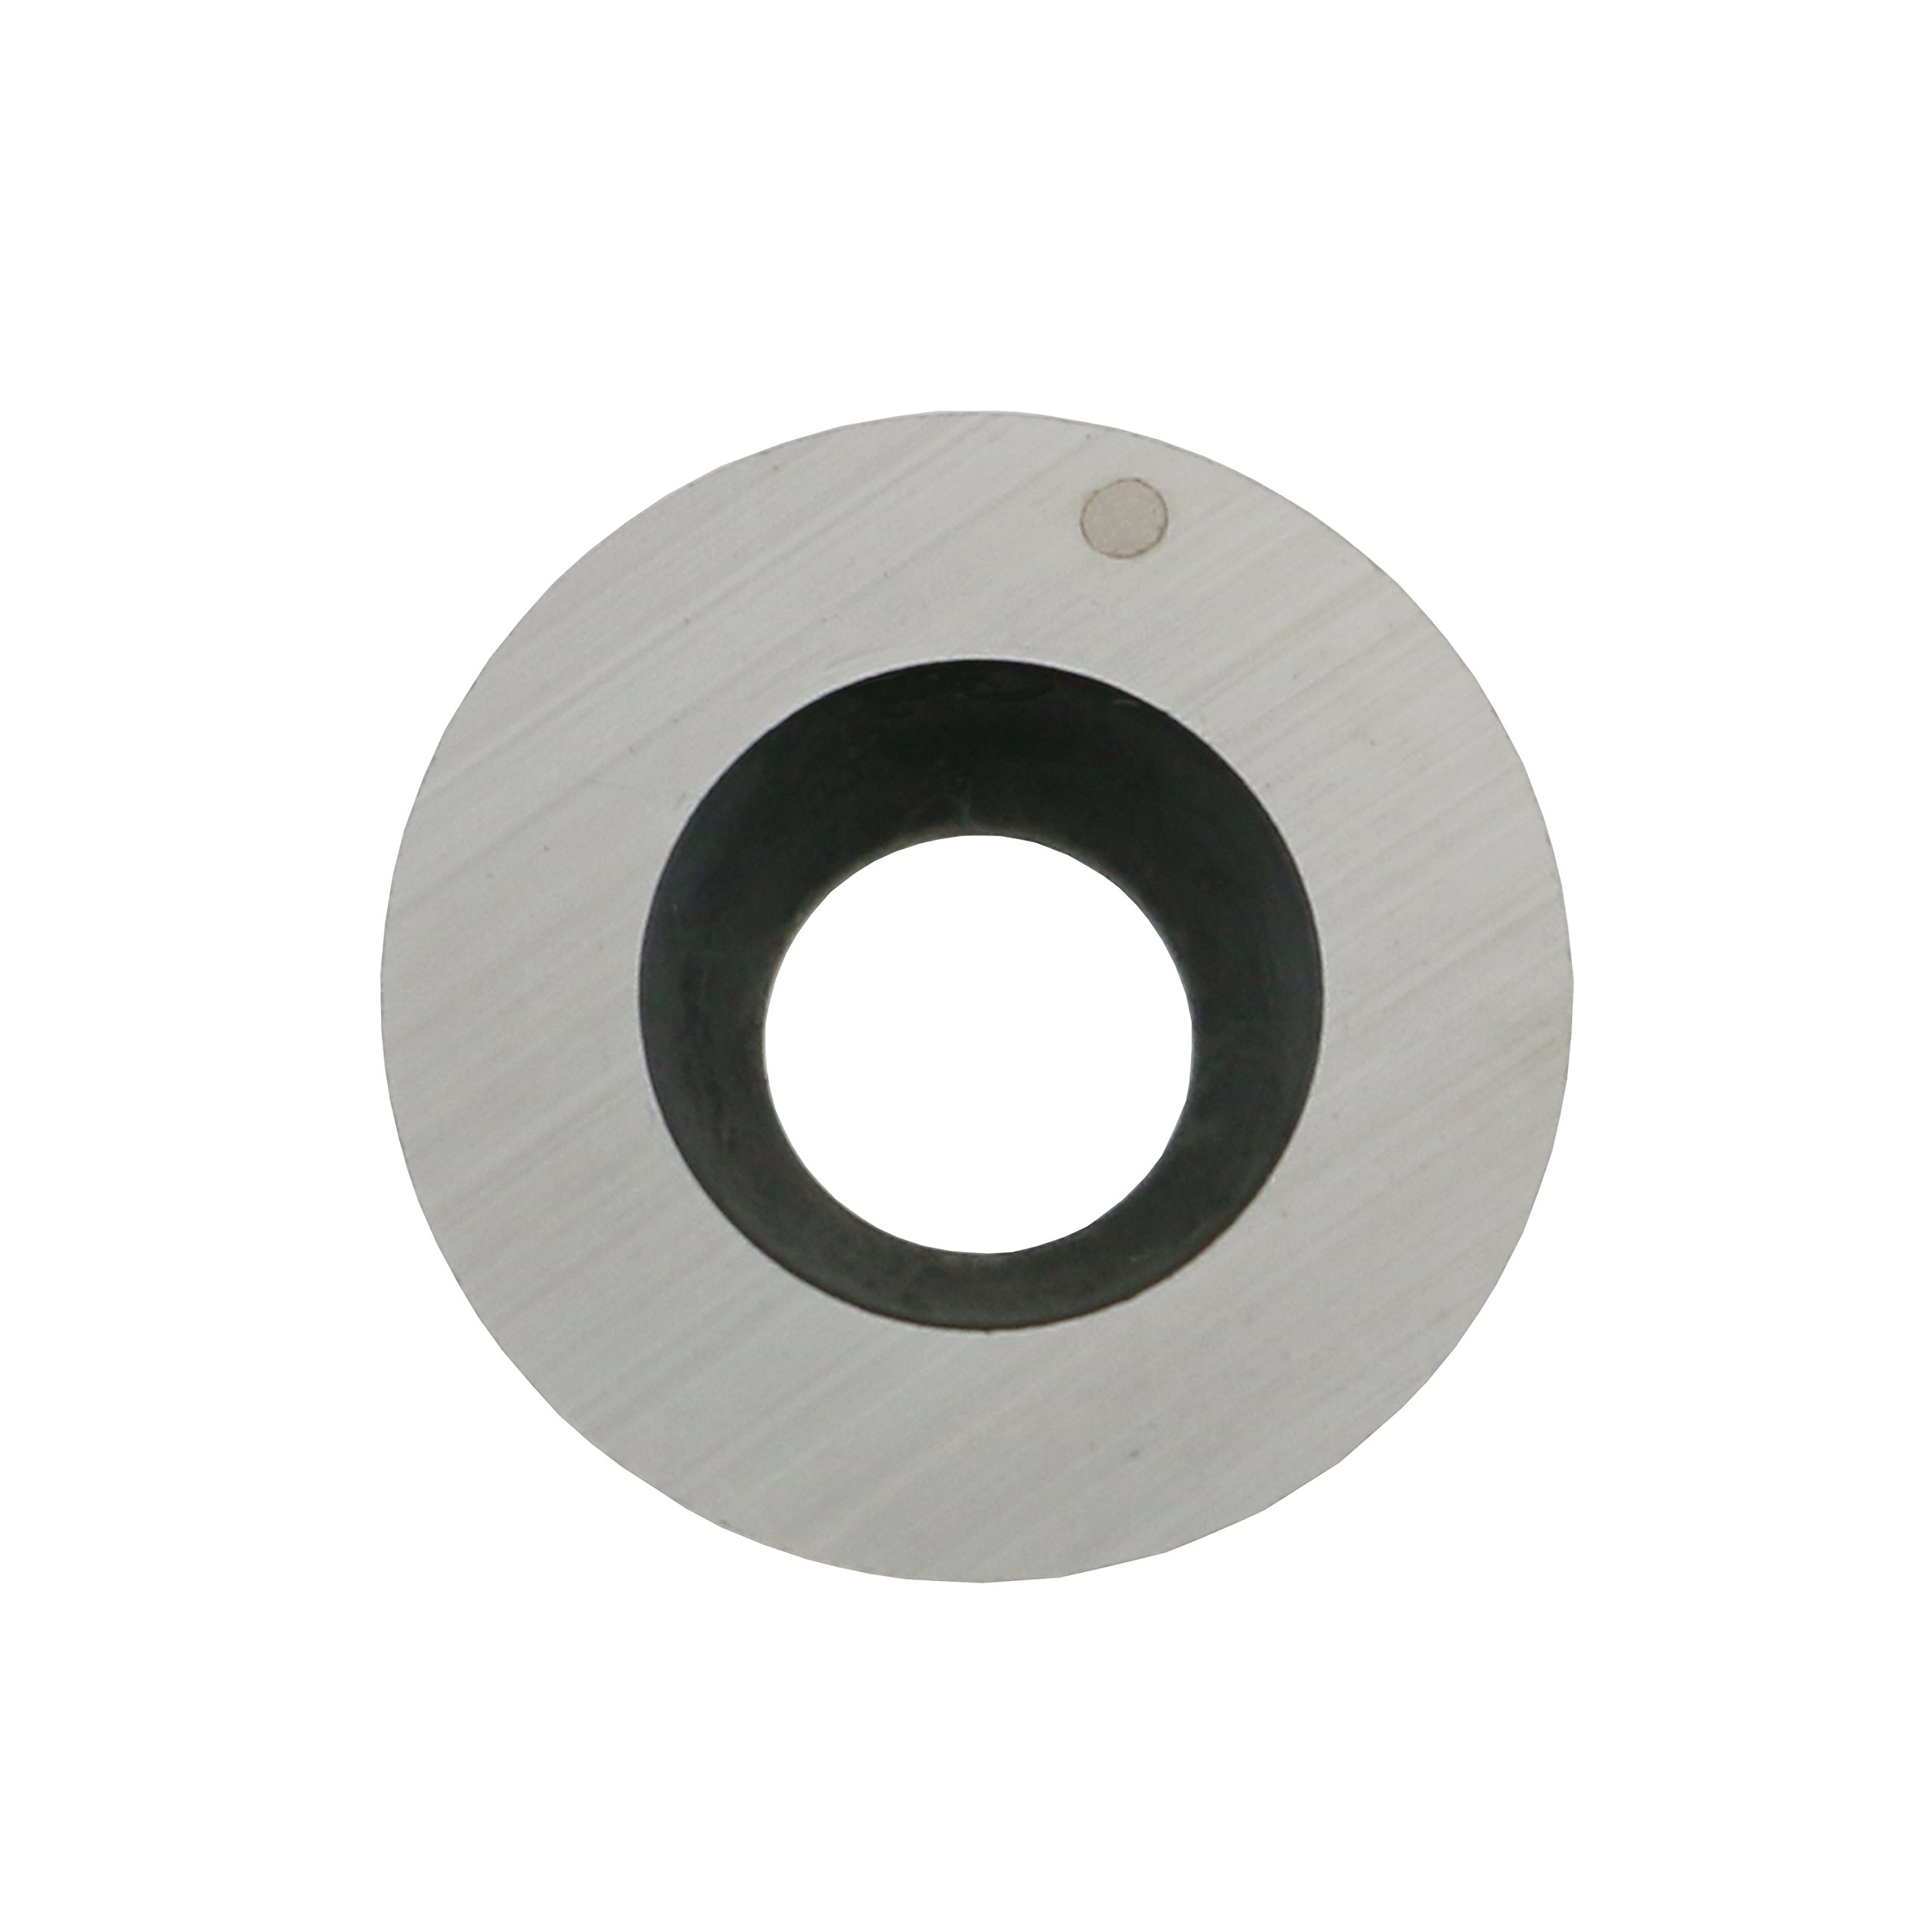 """8.9 mm .35/"""" Dia Round Carbide Insert Cutter for Wood turning 10pcs"""